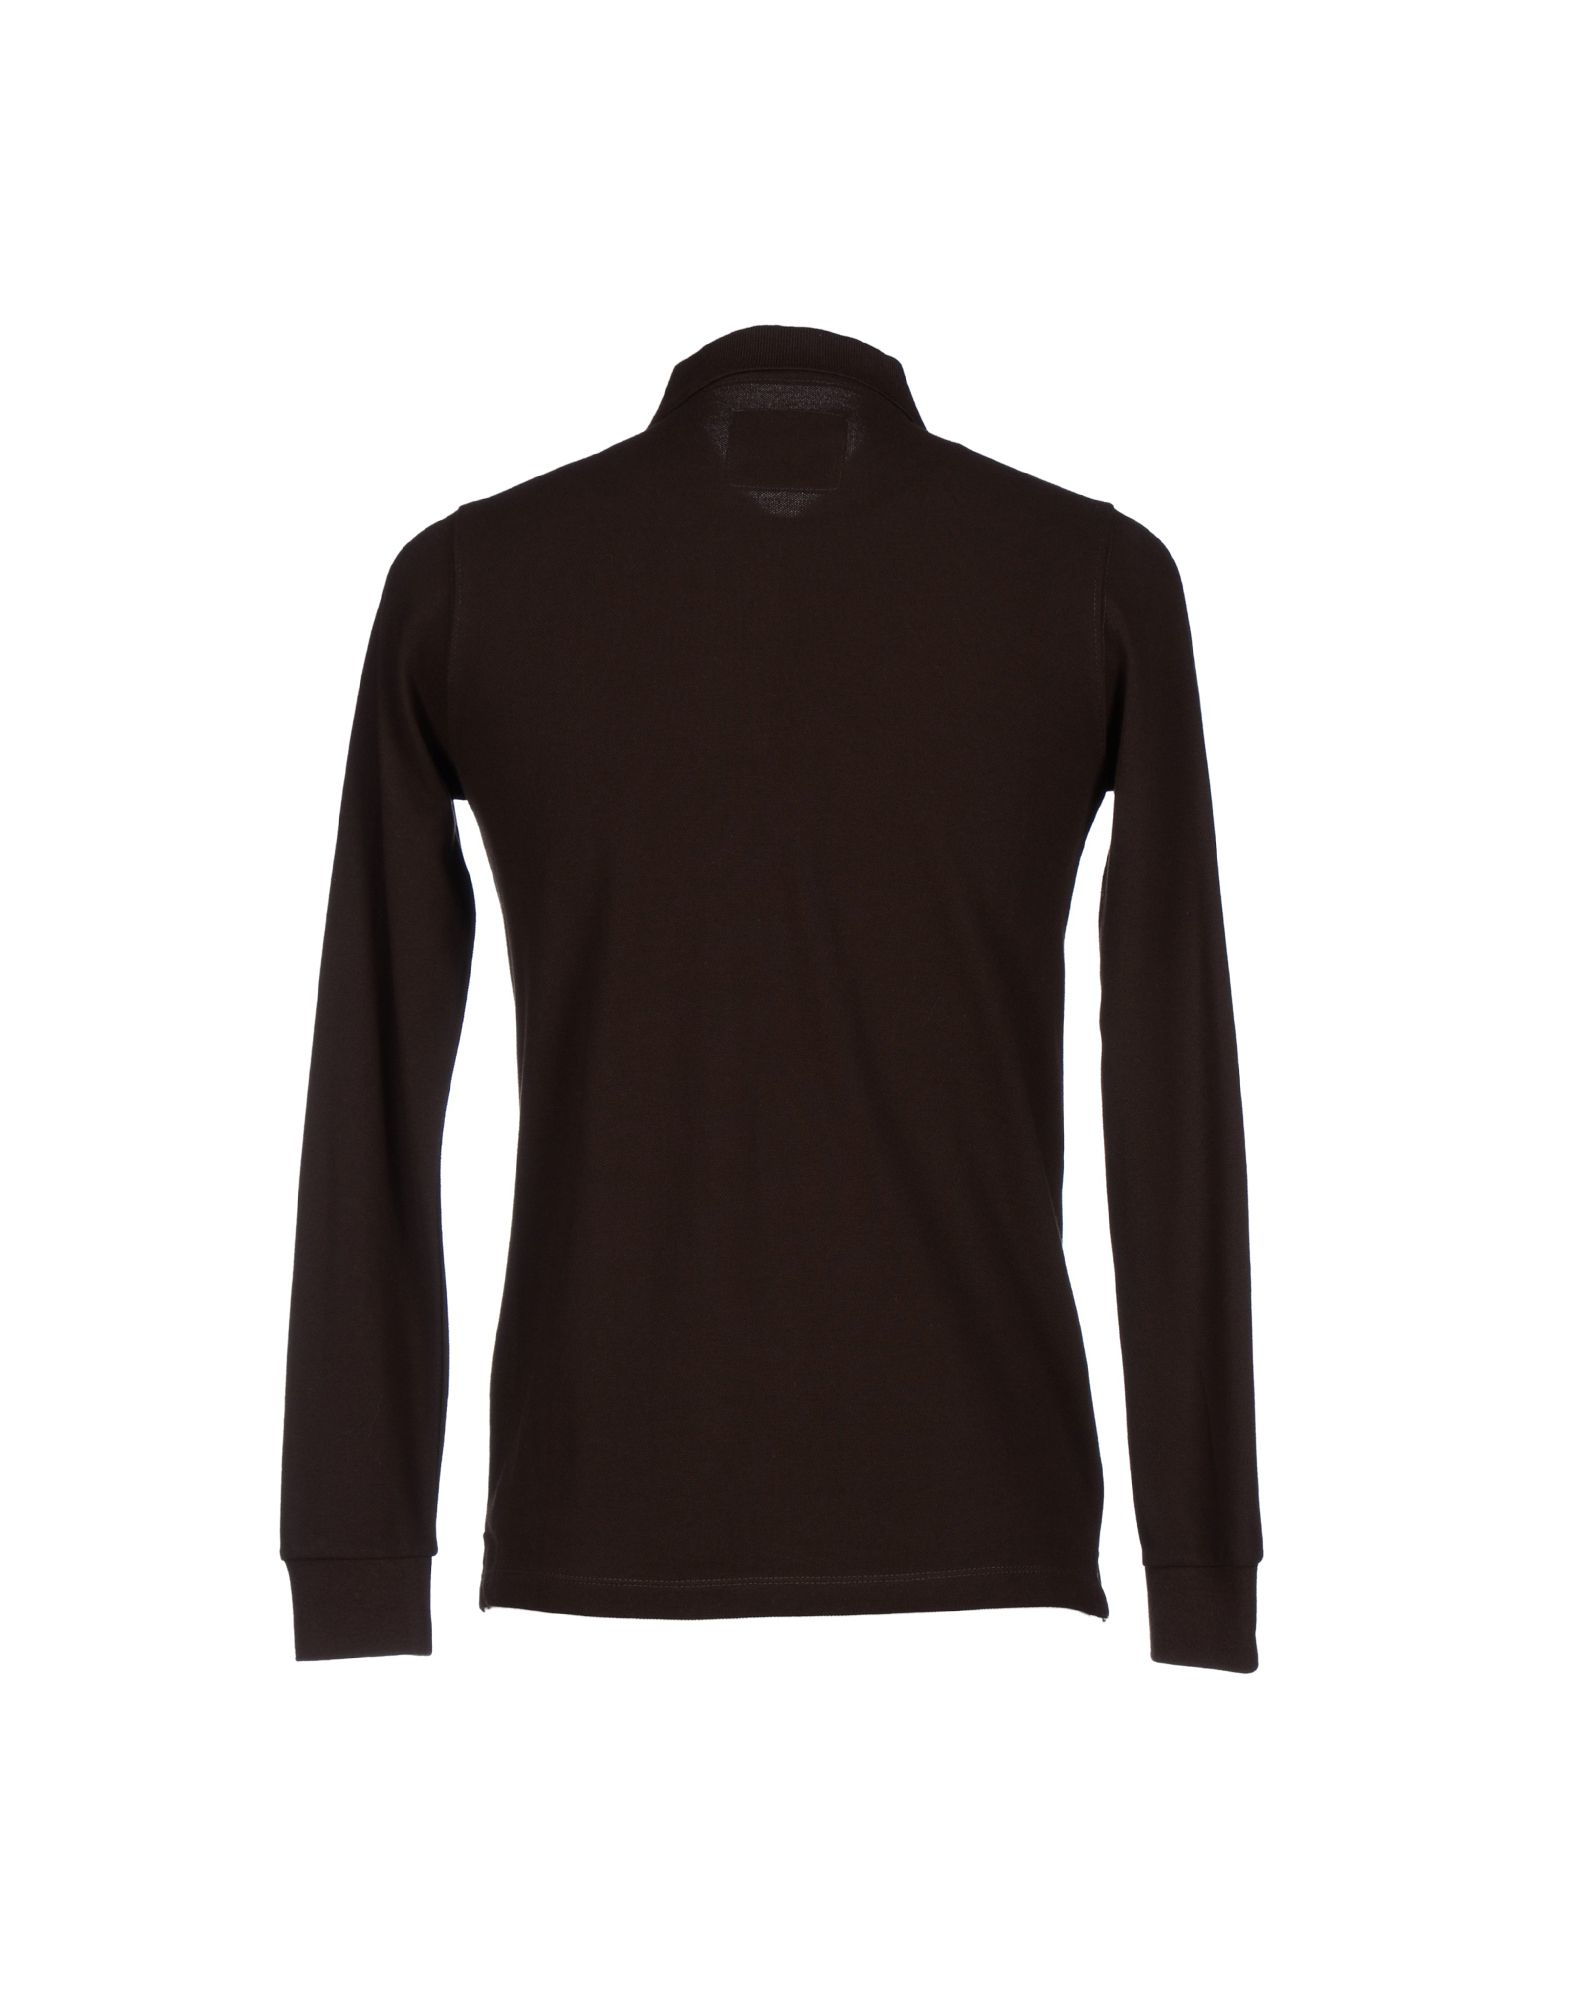 Beverly Hills Polo Club Polo Shirt In Brown For Men Lyst